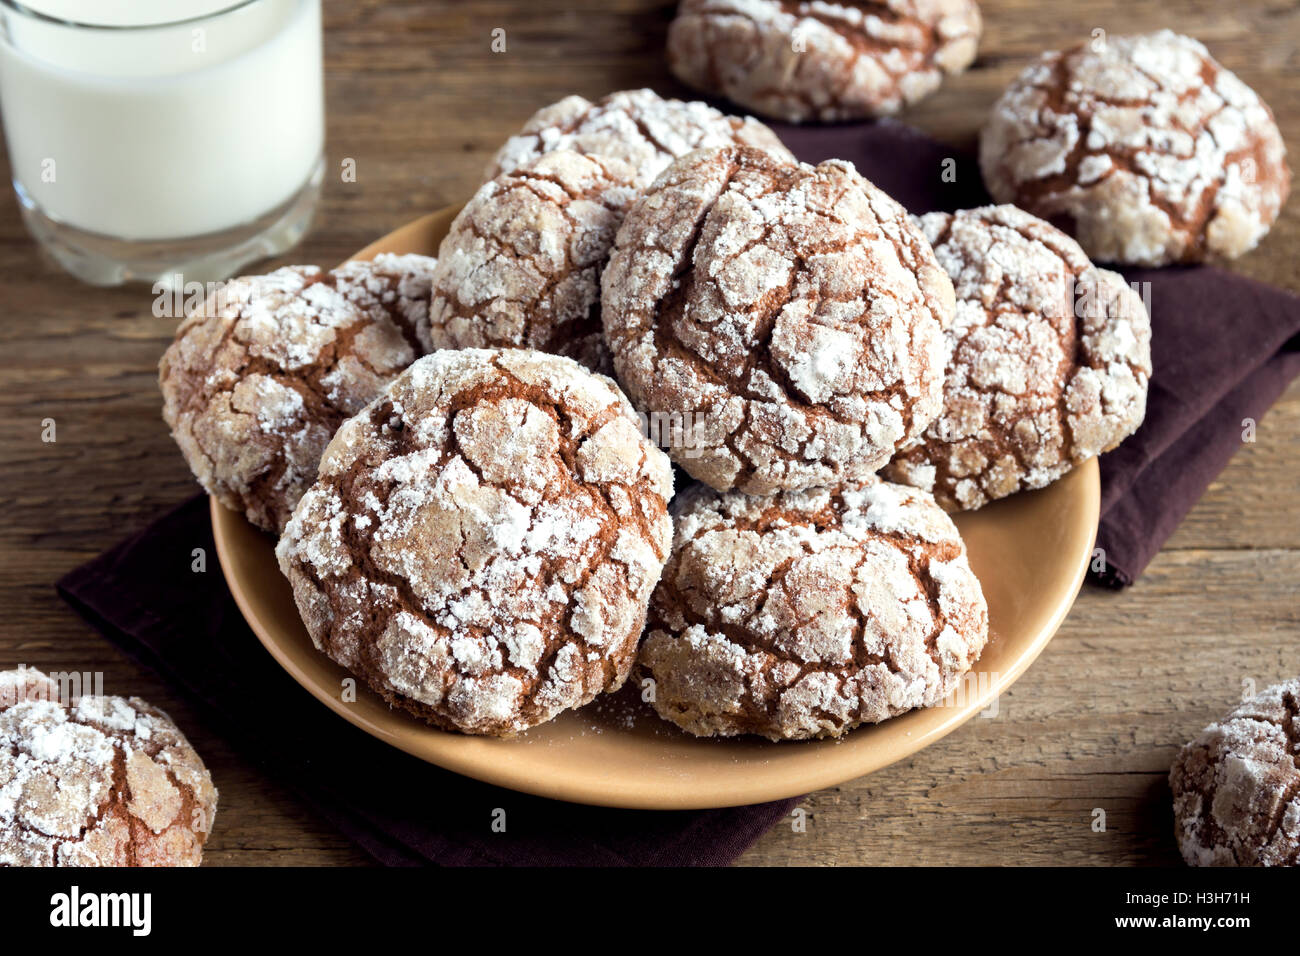 Chocolate crinkle cookies on plate with milk close up - homemade winter chocolate christmas pastry - Stock Image